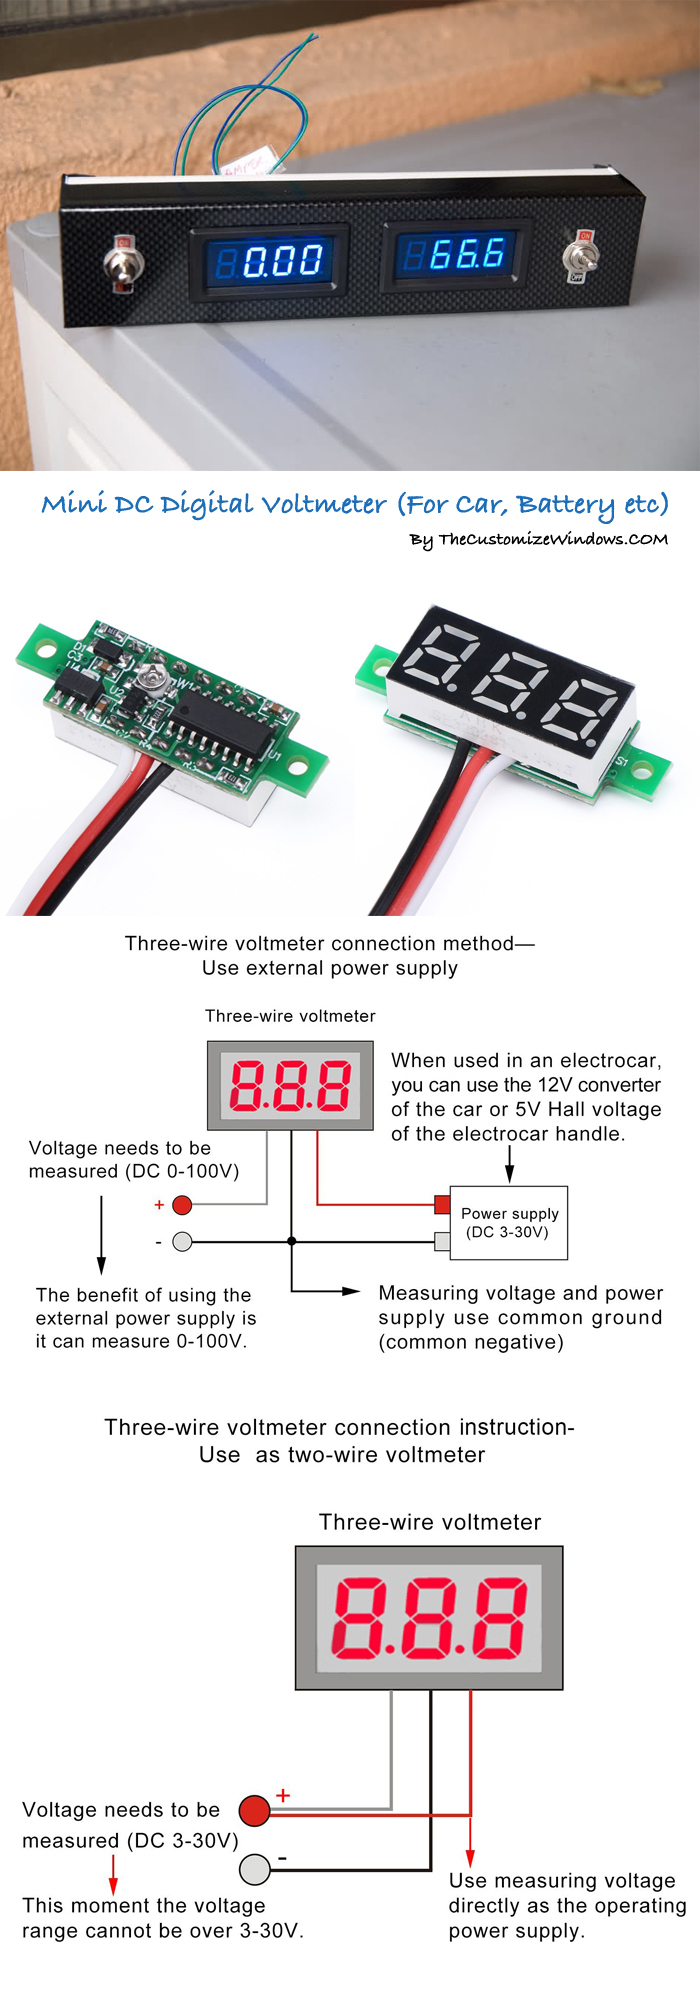 Mini Dc Digital Voltmeter For Car Battery Etc The Customize Windows Schematic Diagram Of Dashboard Can I Create This As Diy Project